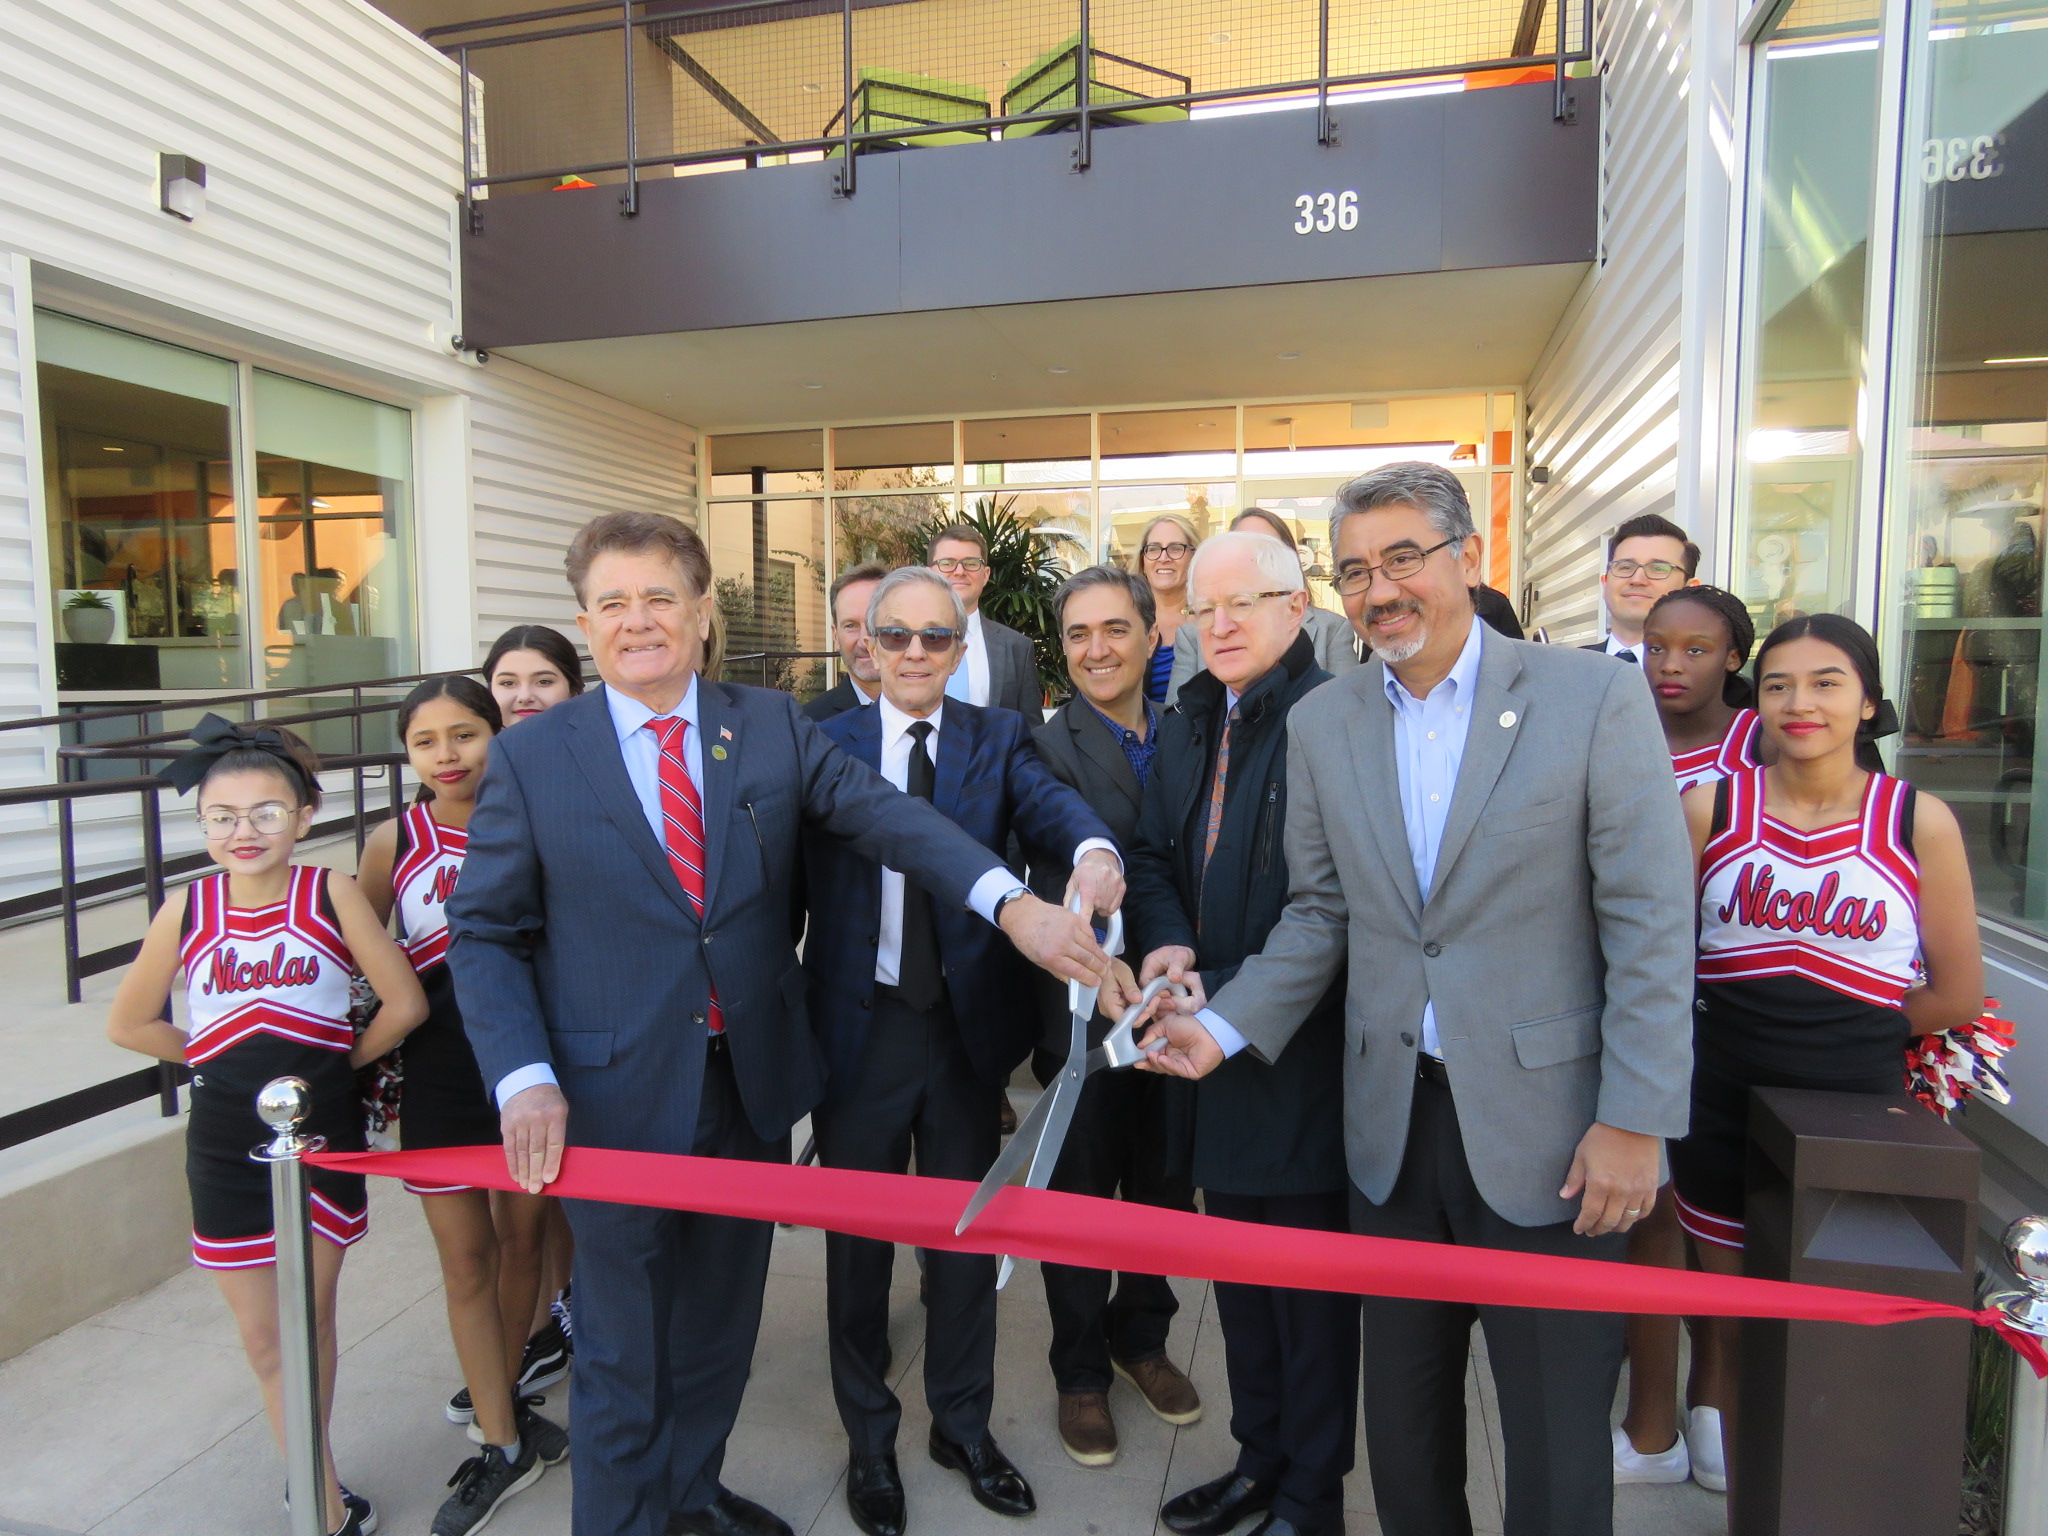 Ribbon Cutting For Affordable Housing Downtown - Fullerton ...